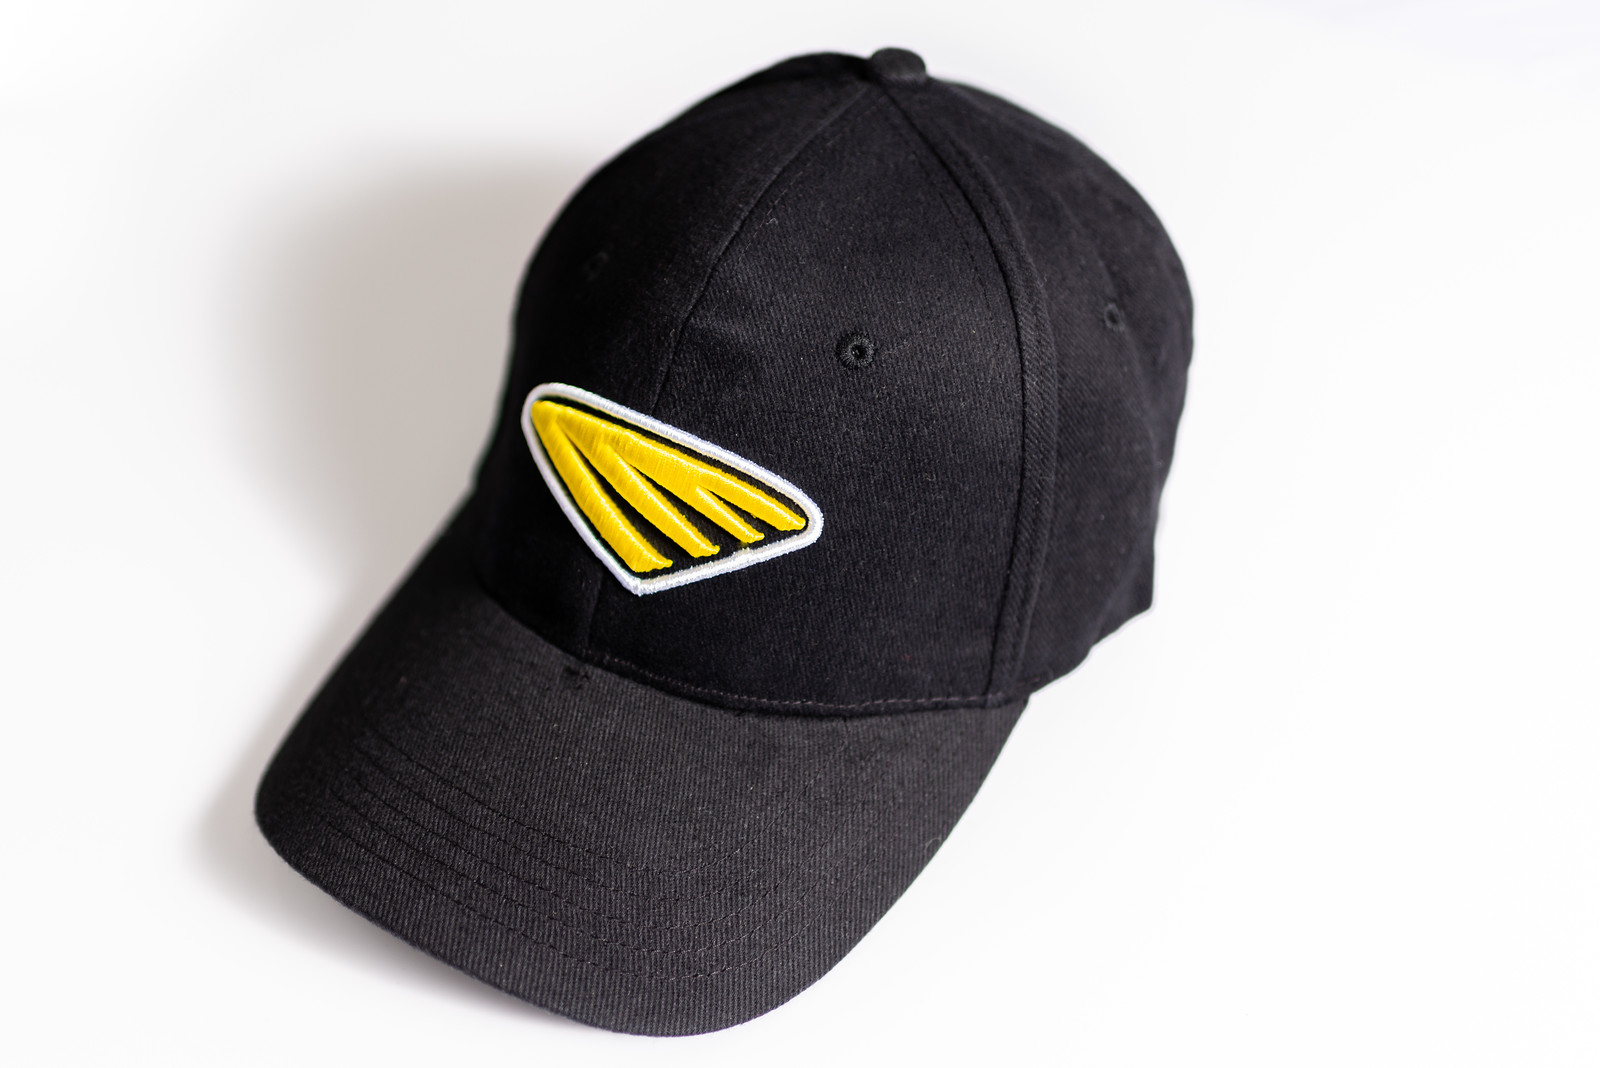 Cycra Icon Hat Flex Fit Black/Yellow S/M